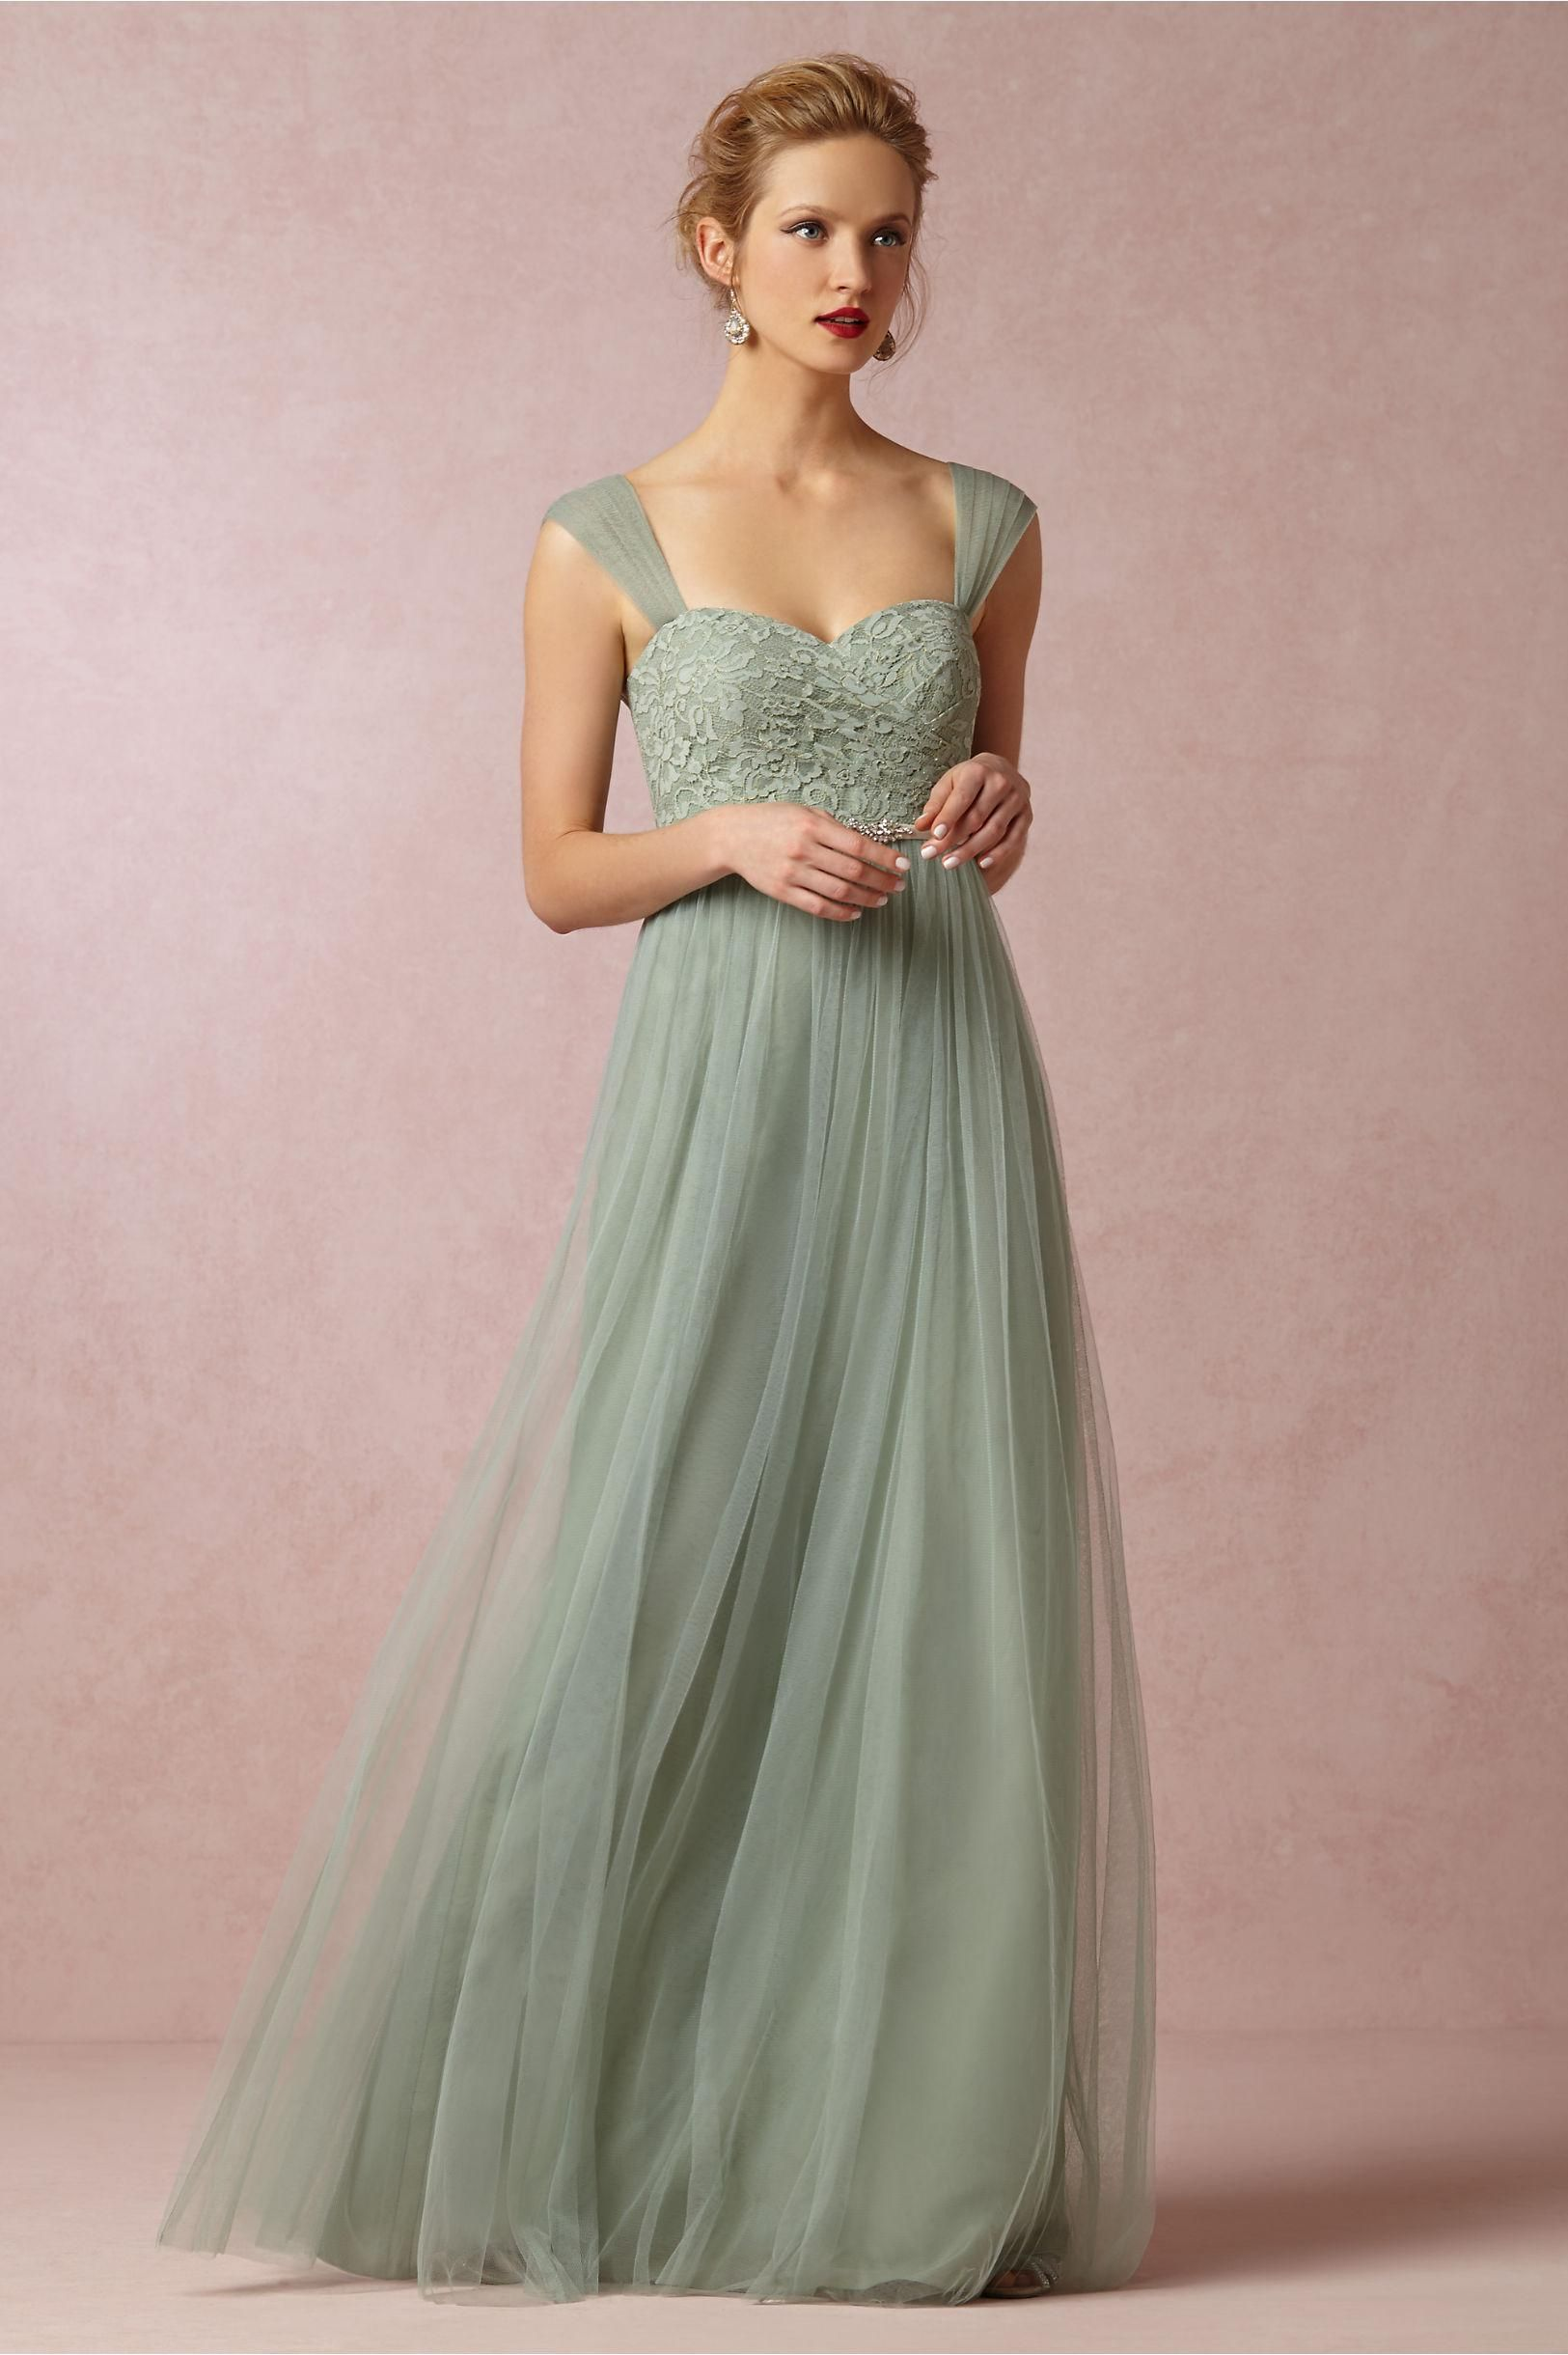 Exclusive design long dresses for bridesmaid lace sweetheart a unique bridesmaid dress exclusive design long dresses for bridesmaid lace sweetheart a line tulle brides maid ombrellifo Image collections